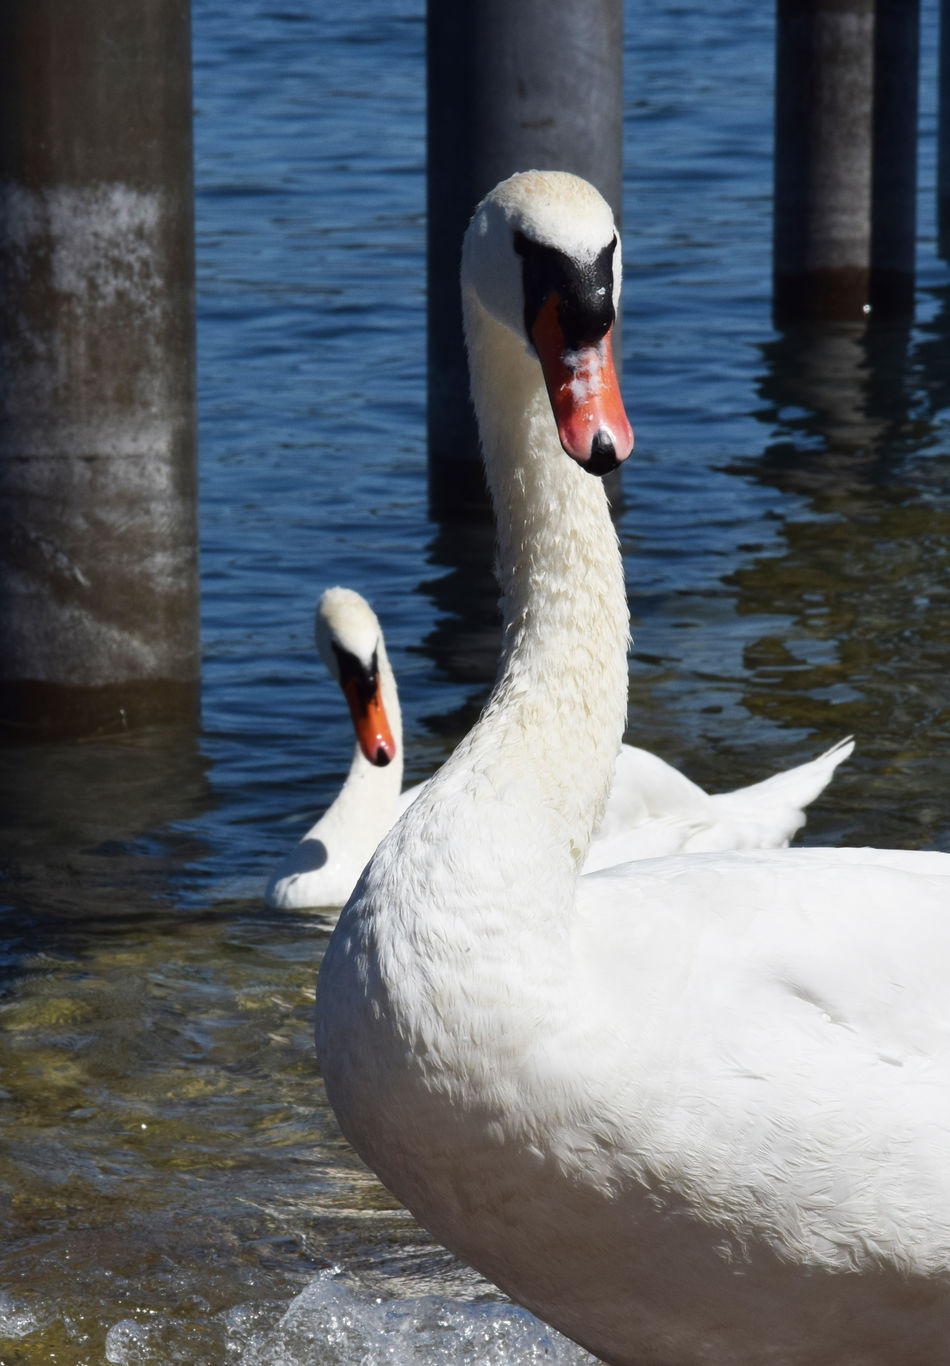 Simoultan motion - two swans Animal Animal Themes Animals In The Wild Avian Beak Bird Floating On Water Lake Nature Swan Swimming Water Water Bird White Color Wildlife Zoology Two Is Better Than One